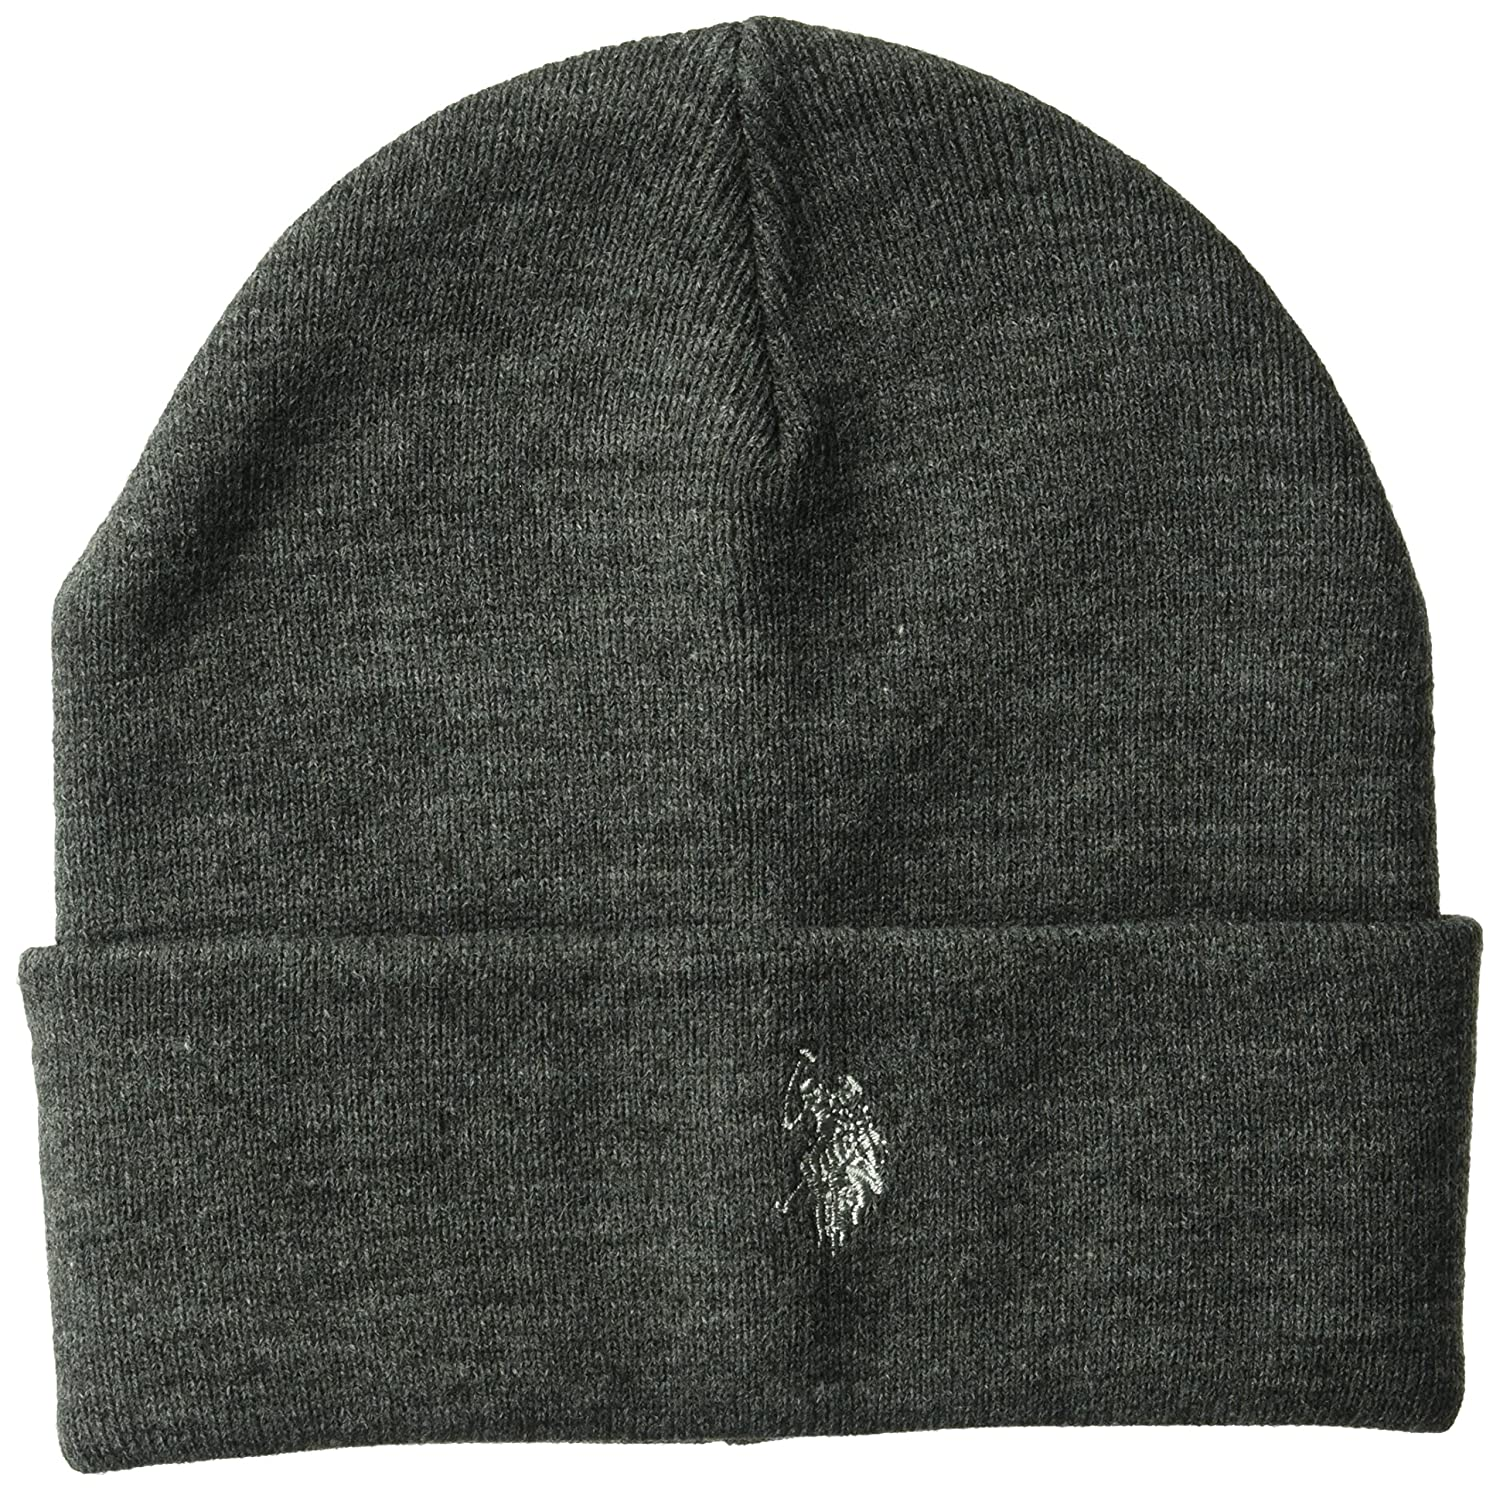 U.S. Polo Assn. Men s Fine Knit Cuffed Winter Beanie 3678583795d